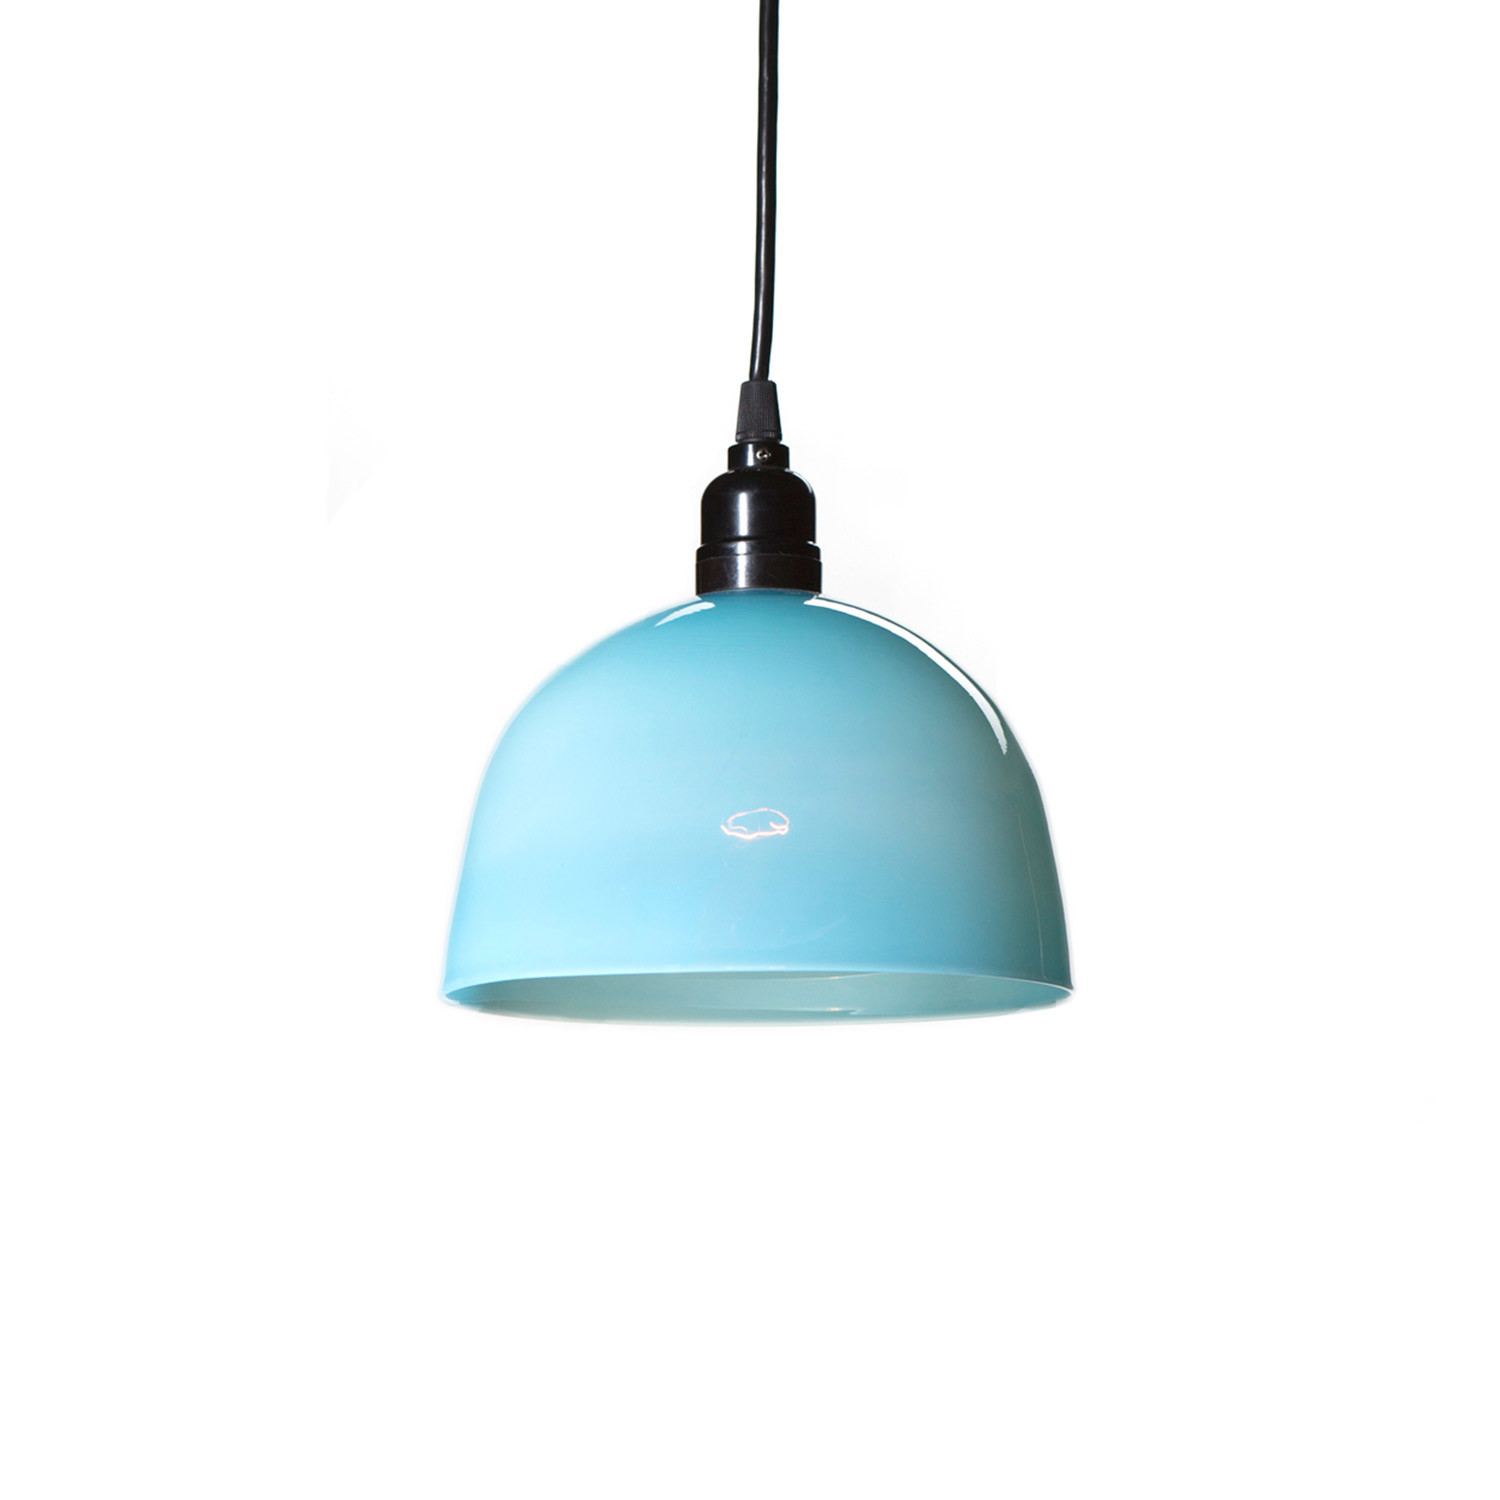 Simple Pendant Light Blue Small Esque Studio Touch Of Modern